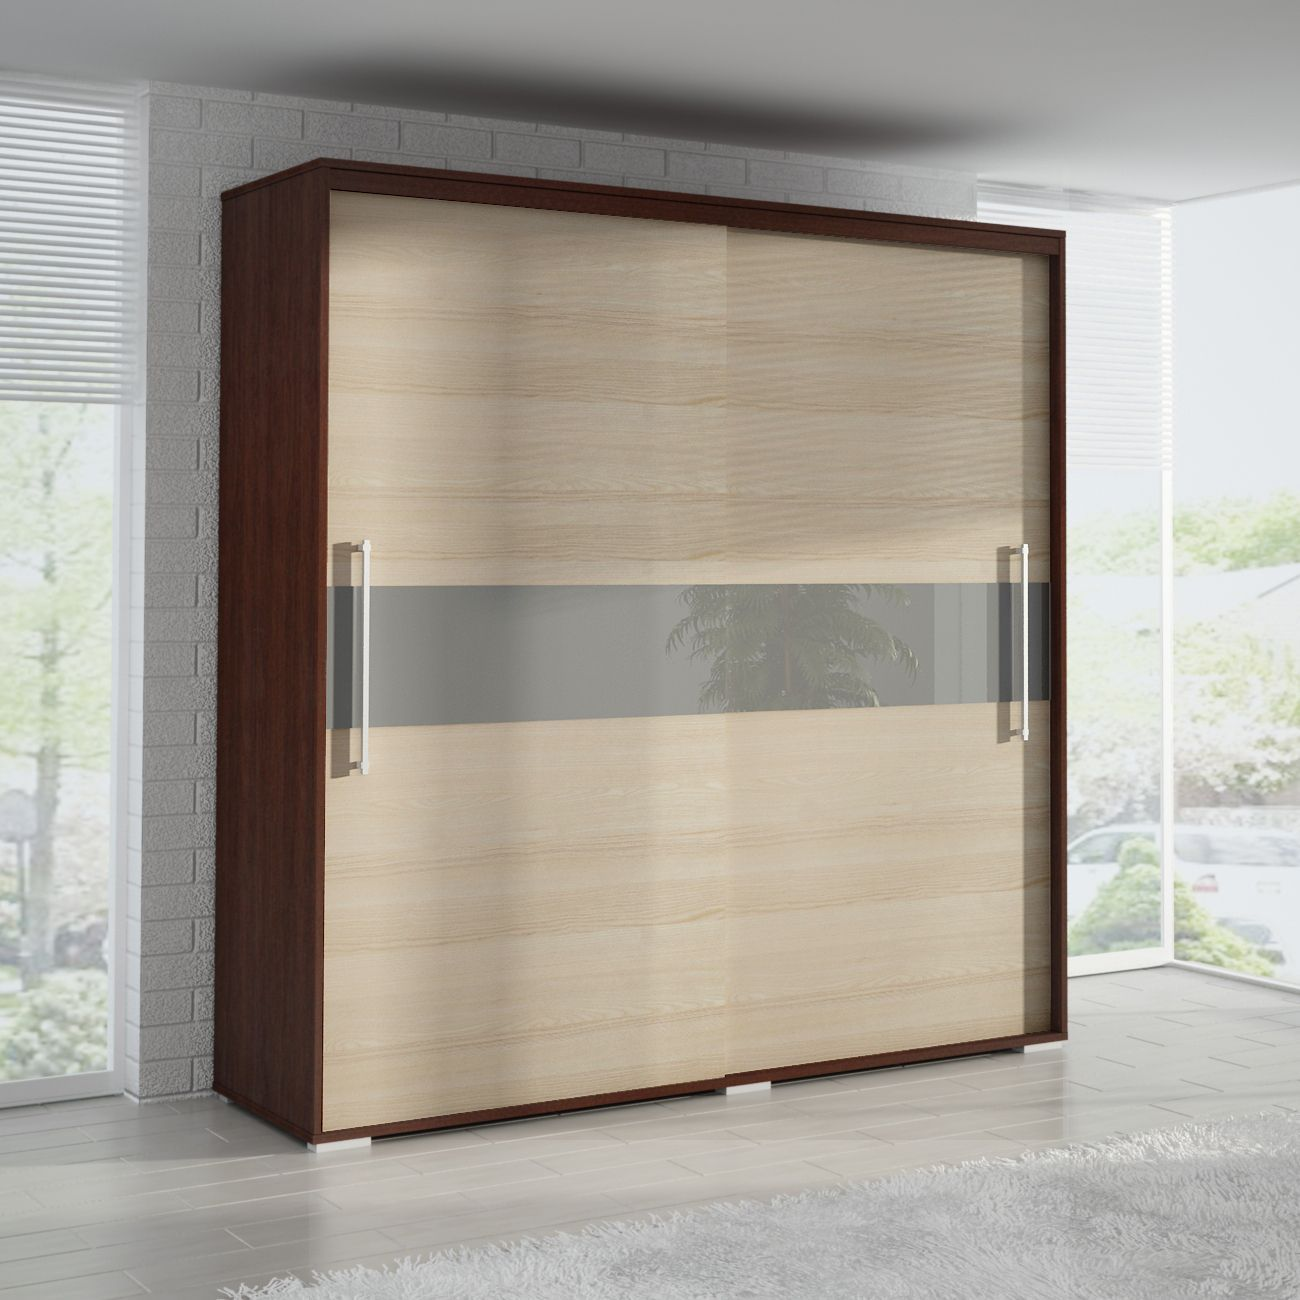 Bedroom Closets And Wardrobes: Wardrobe Closet Sliding Door